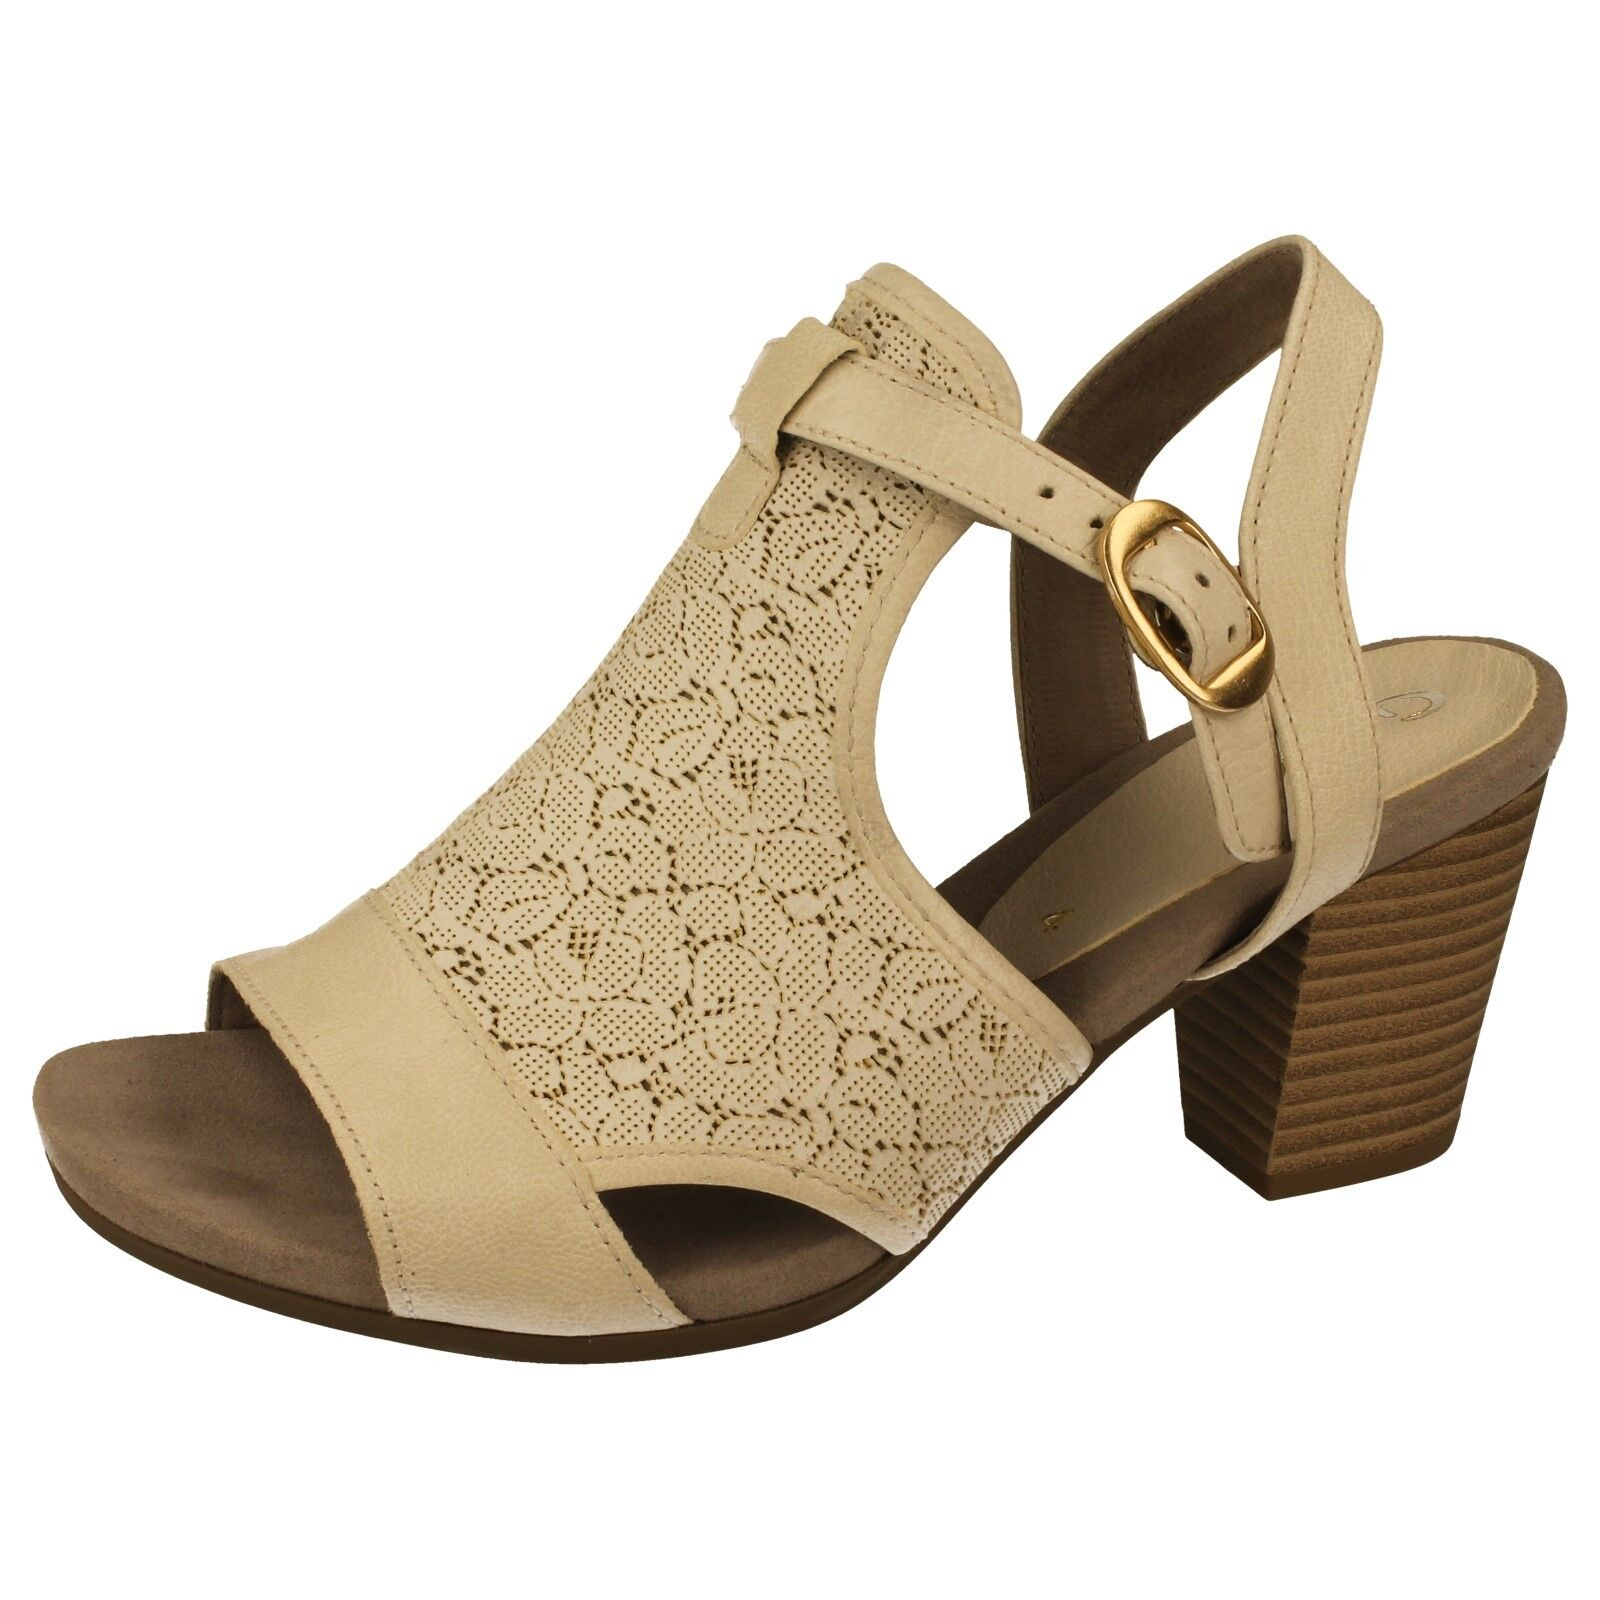 LADIES GABOR 25.550.52 OPEN BACK WEISS LEATHER SANDAL